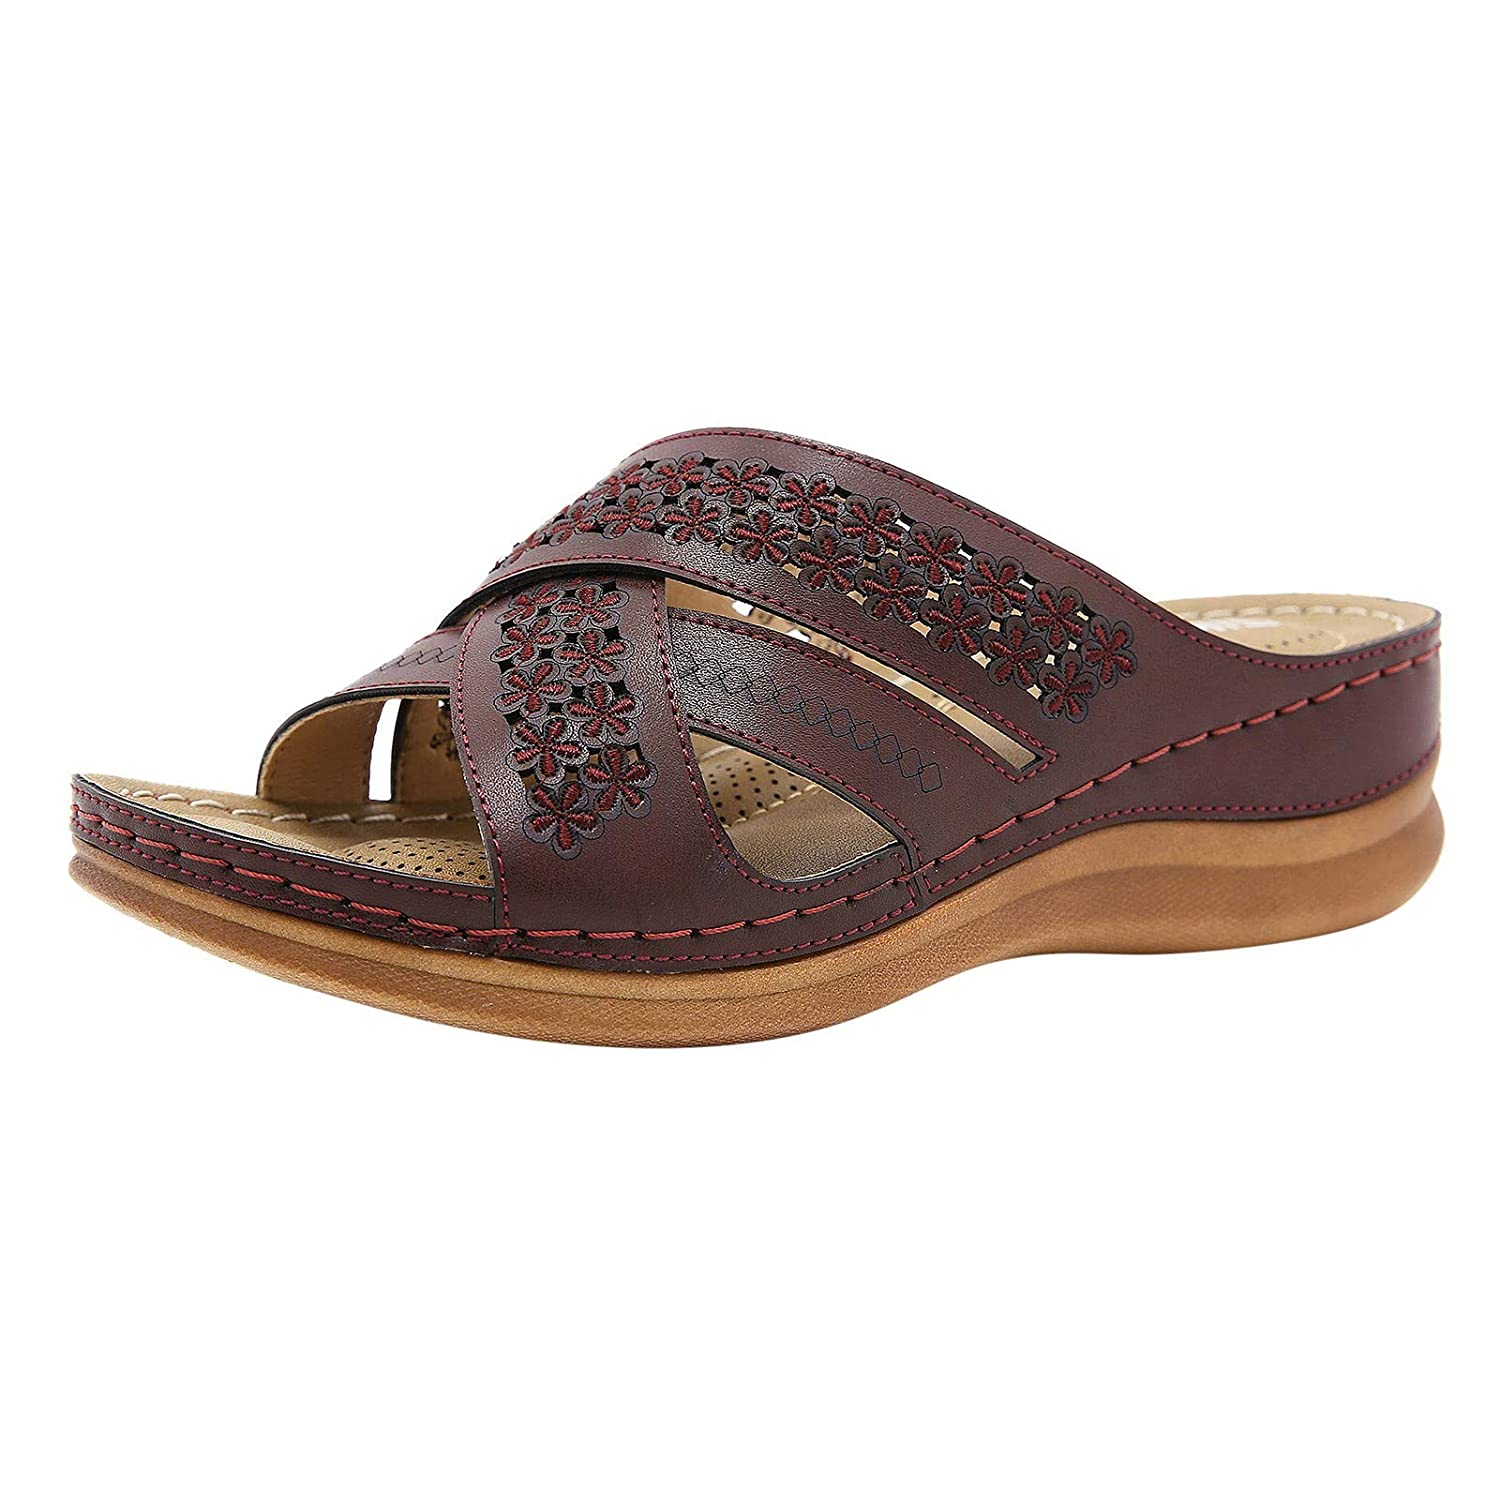 Women's Sandals Outdoor Slippers Anti Max 48% sale OFF Slip Casual Toe Beach Open